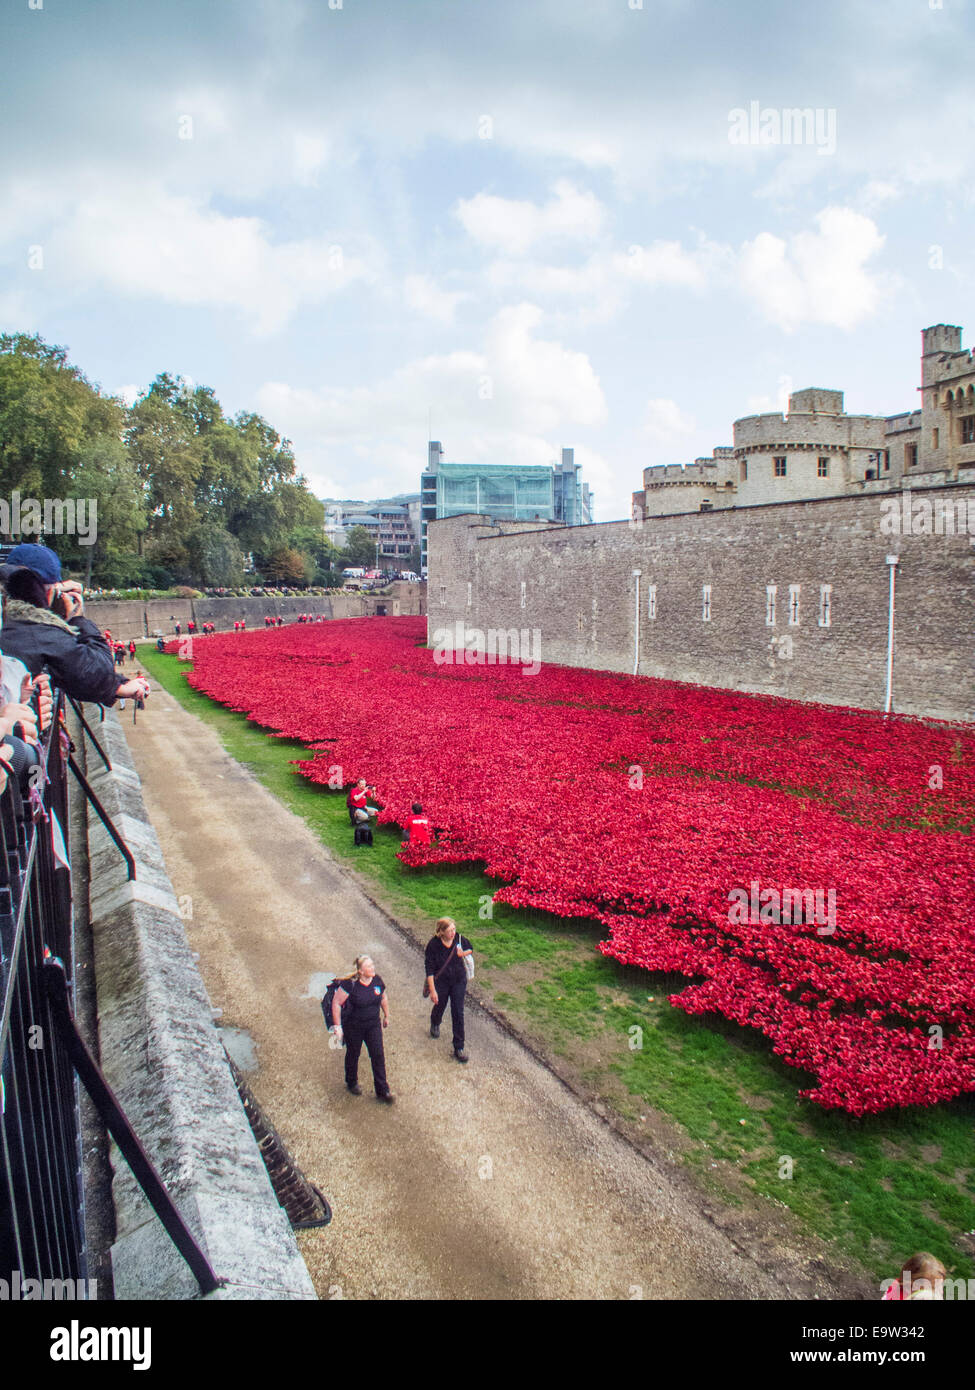 Blood swept lands and seas of red. The poppies at the Tower of London. Very poignant  reminder of our 1st world - Stock Image